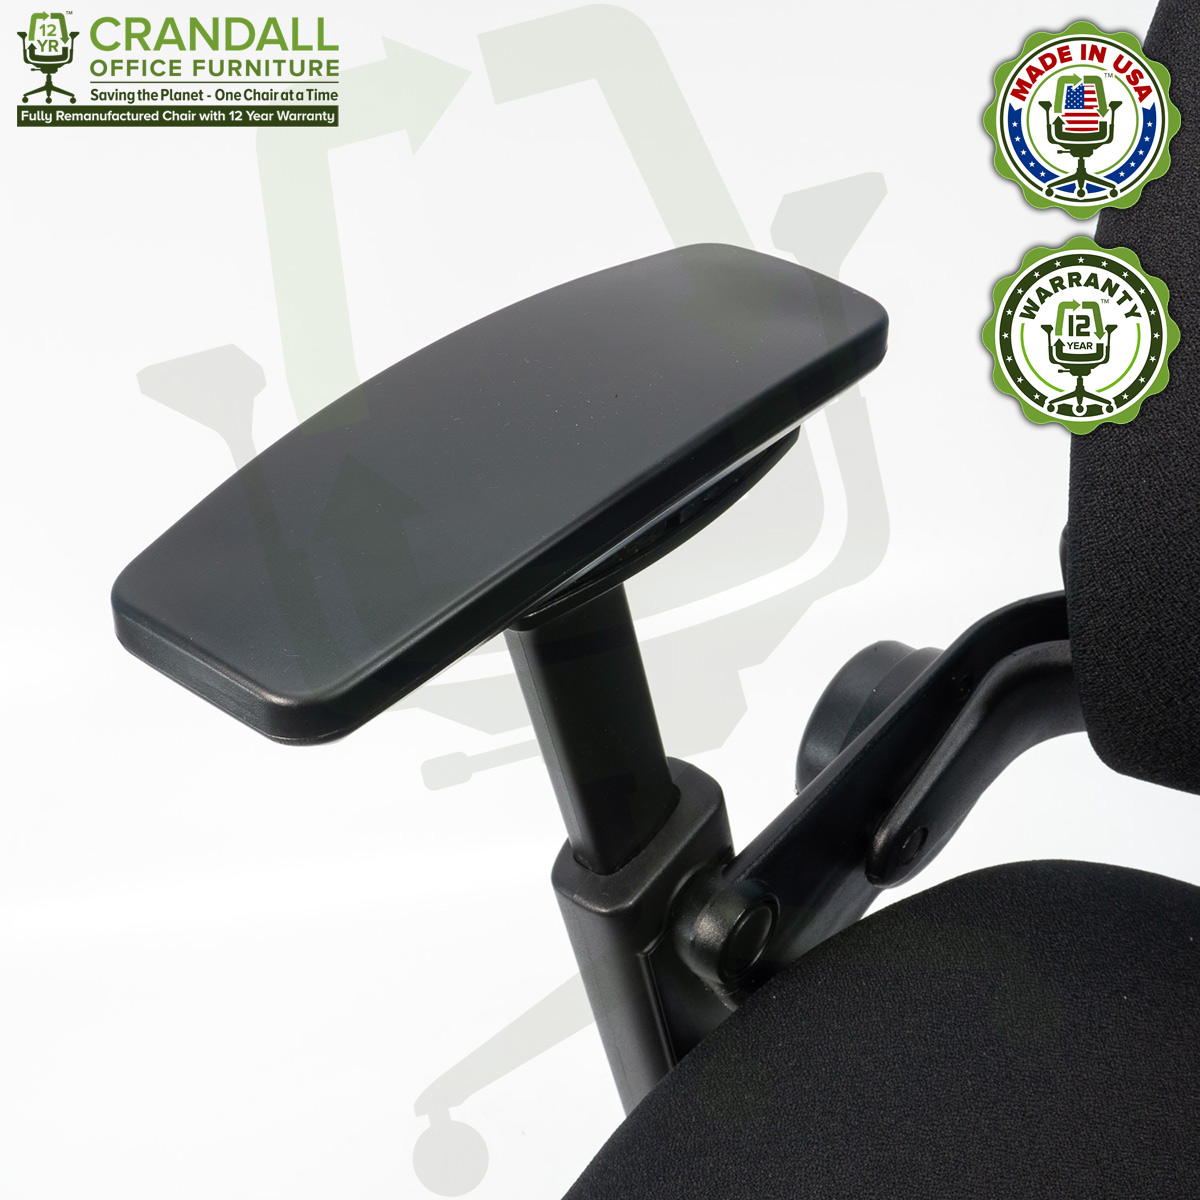 Crandall-Office-Remanufactured-Steelcase-462-V2-Leap-Chair-06